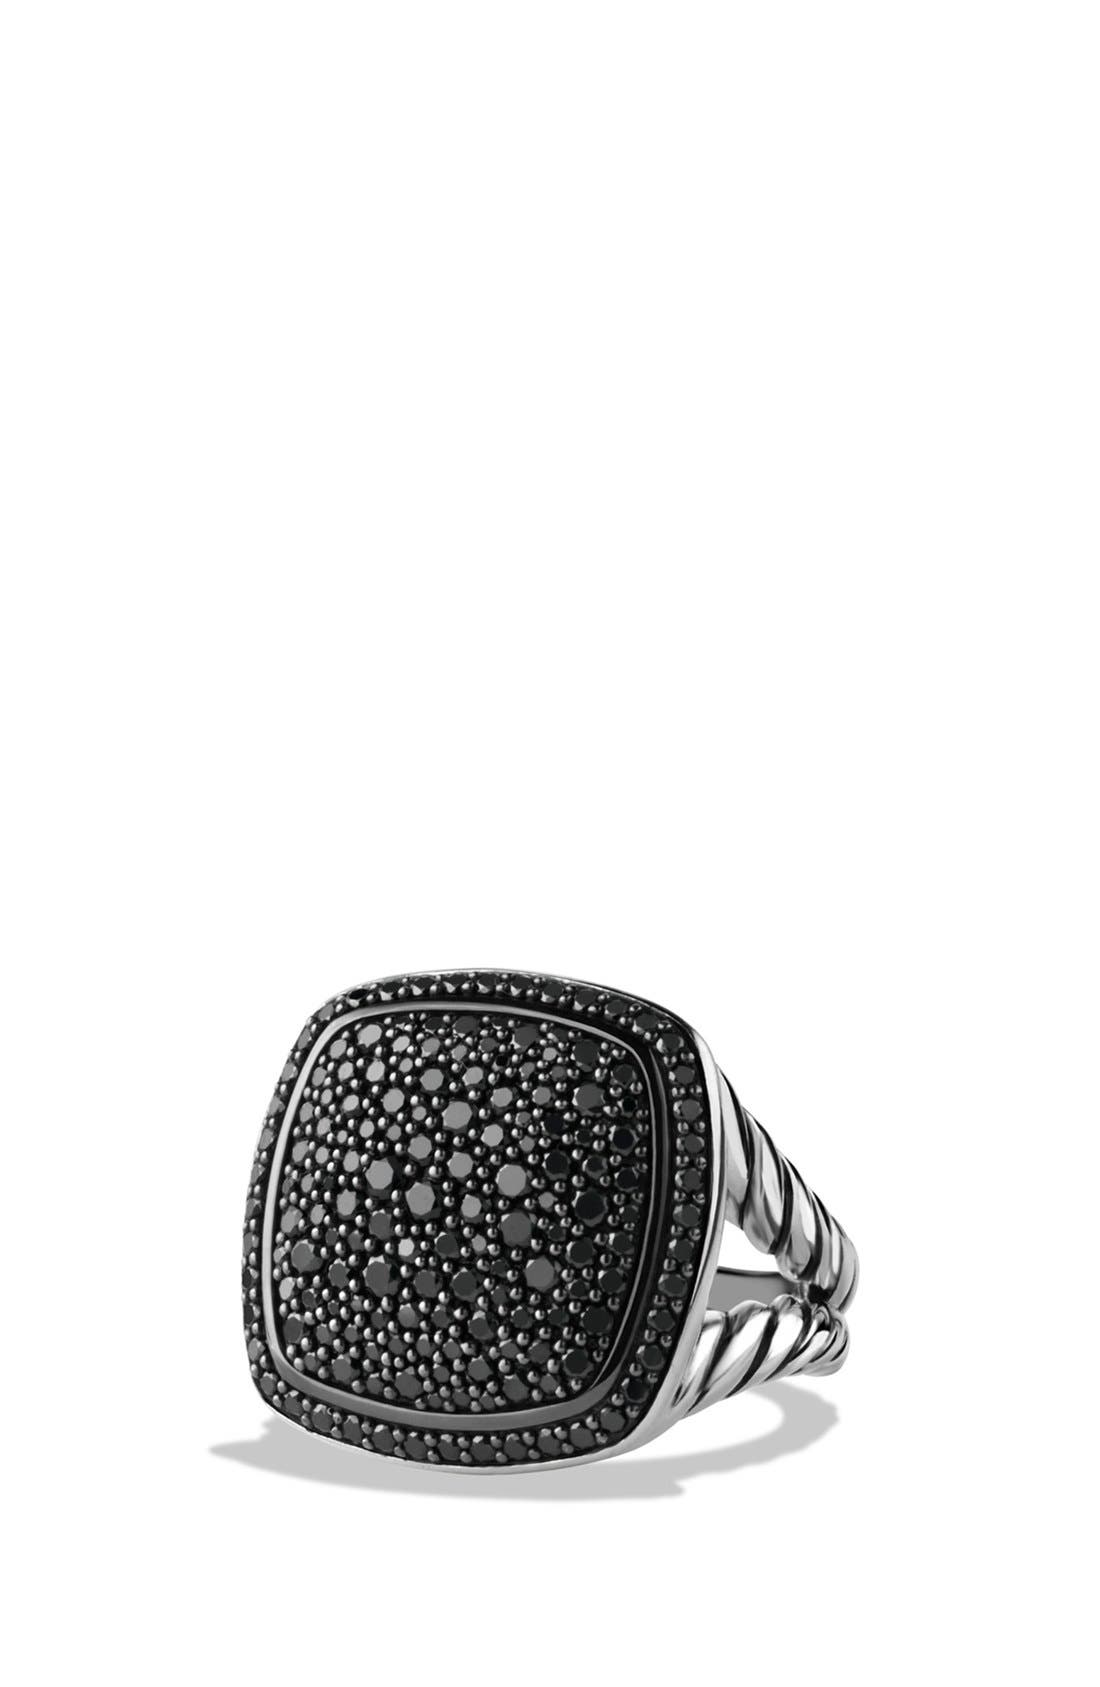 Alternate Image 1 Selected - David Yurman 'Albion' Ring with Diamonds